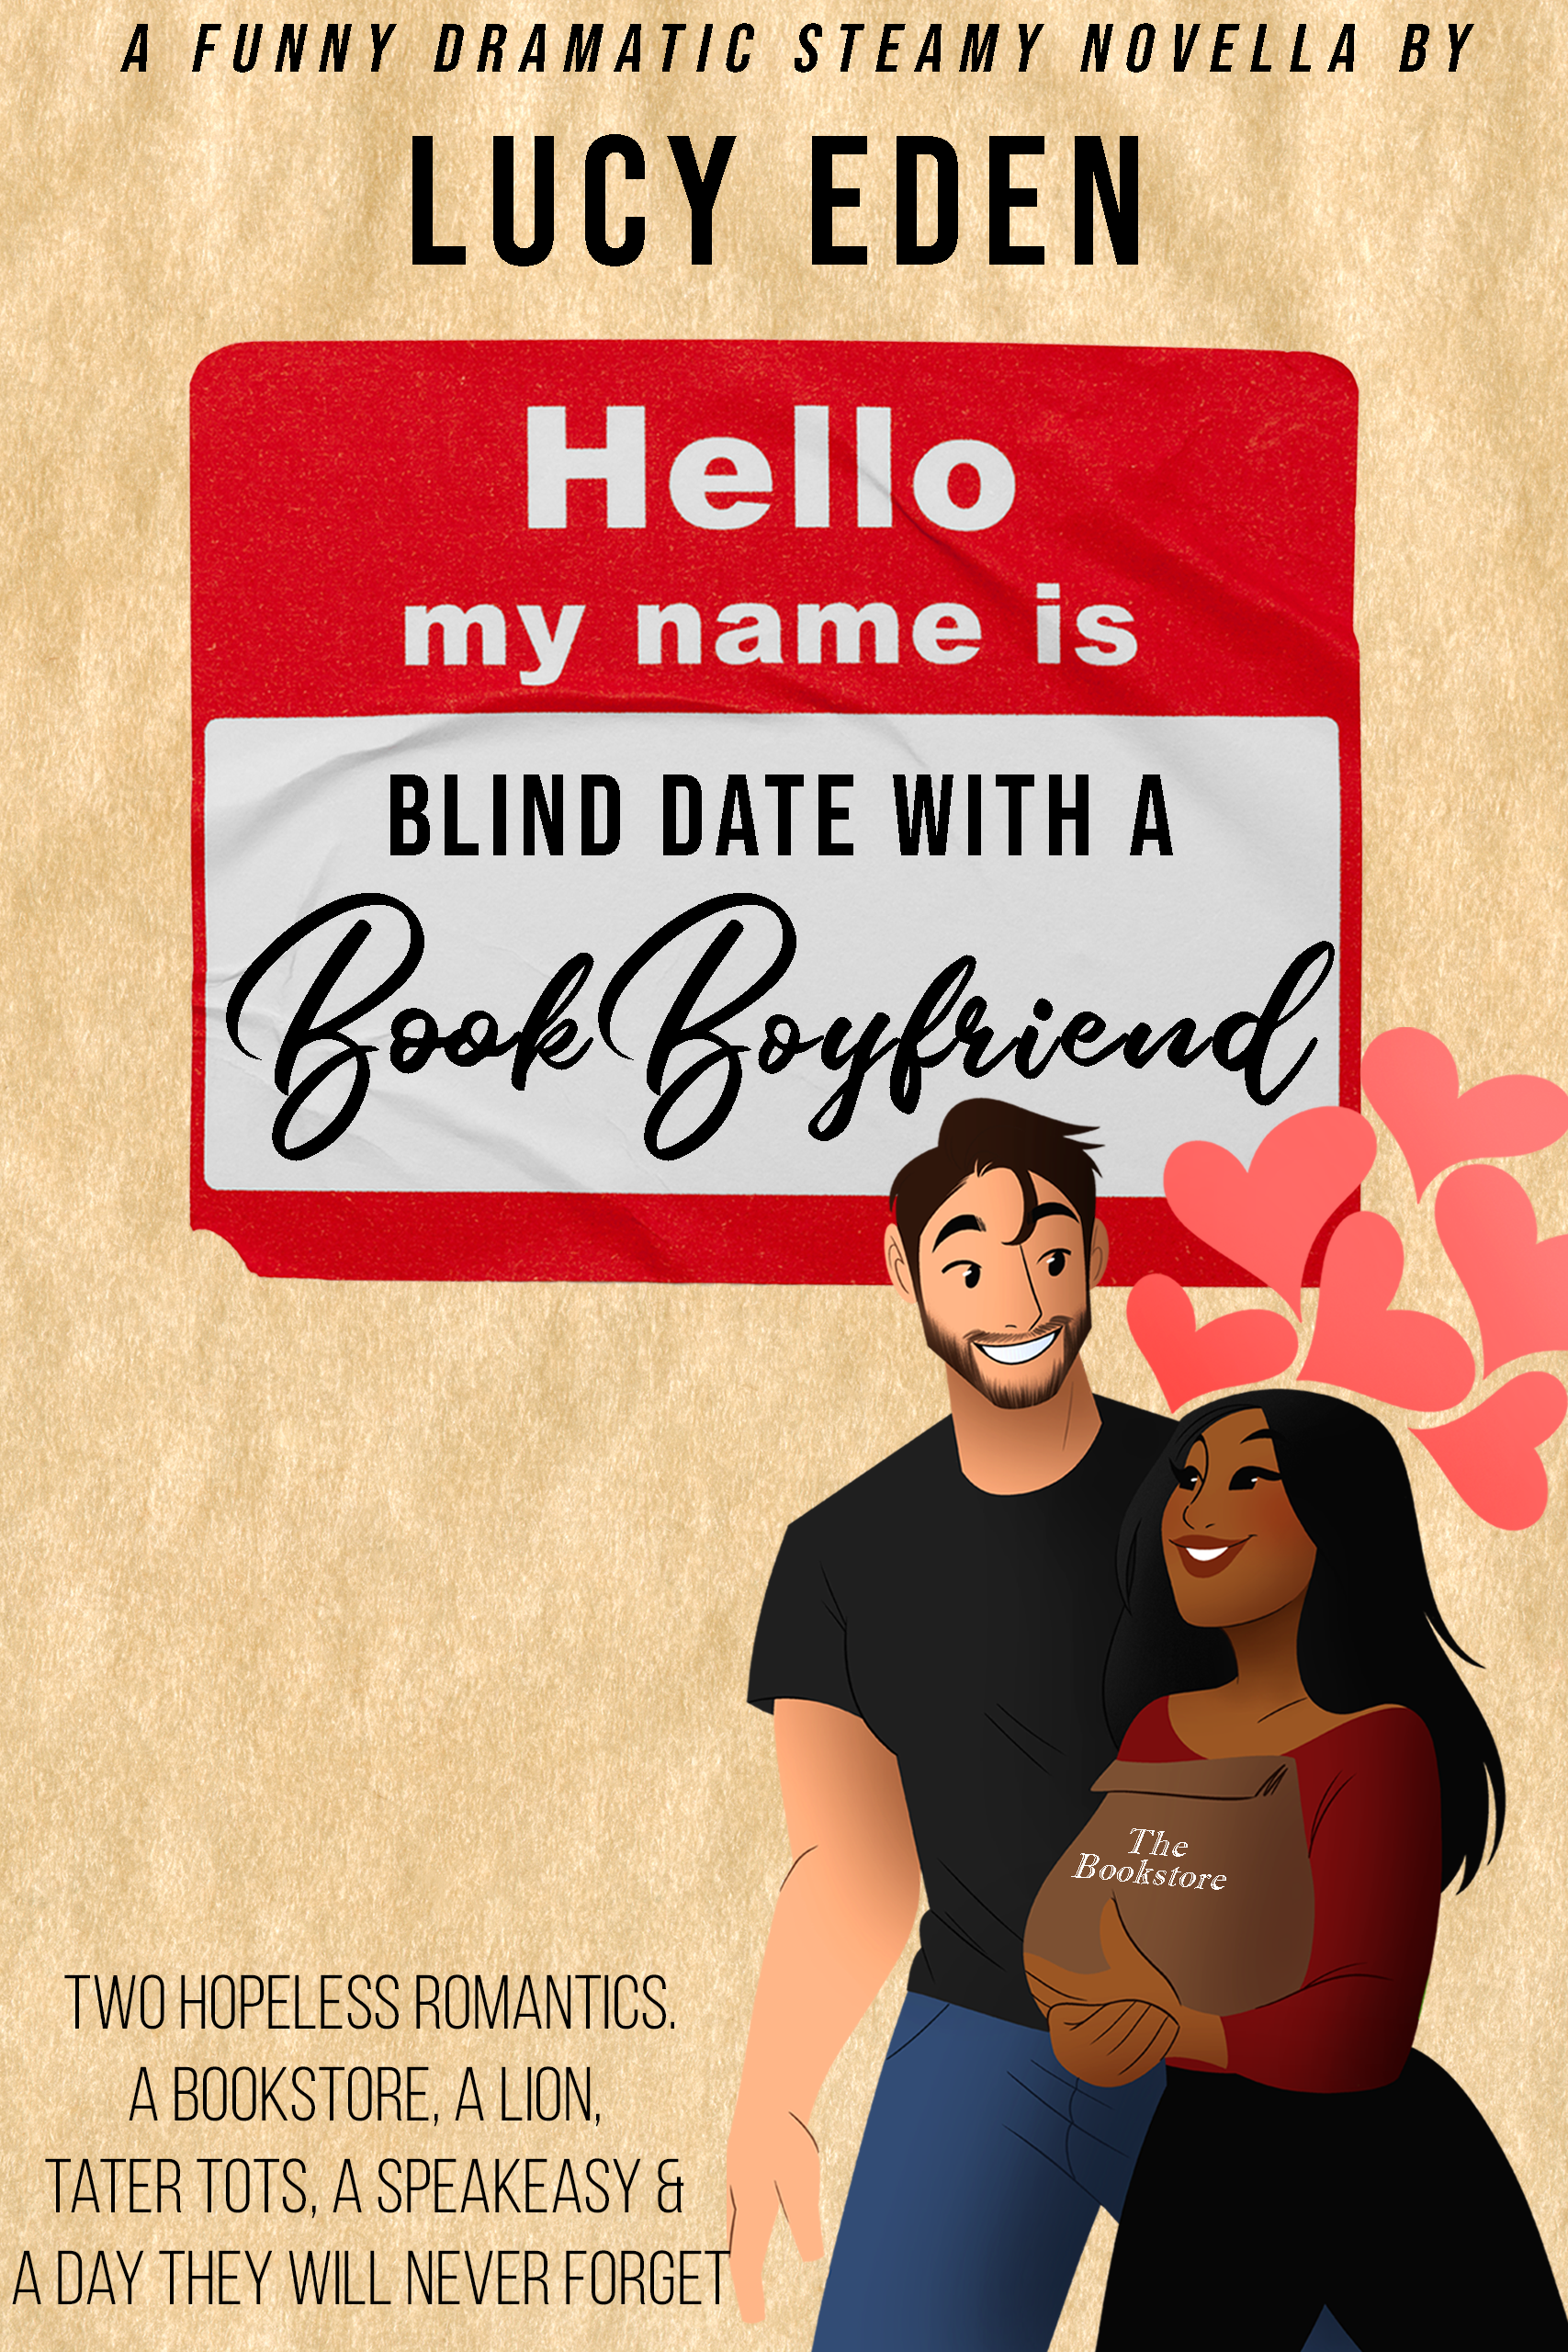 Blind Date with a Book Boyfriend